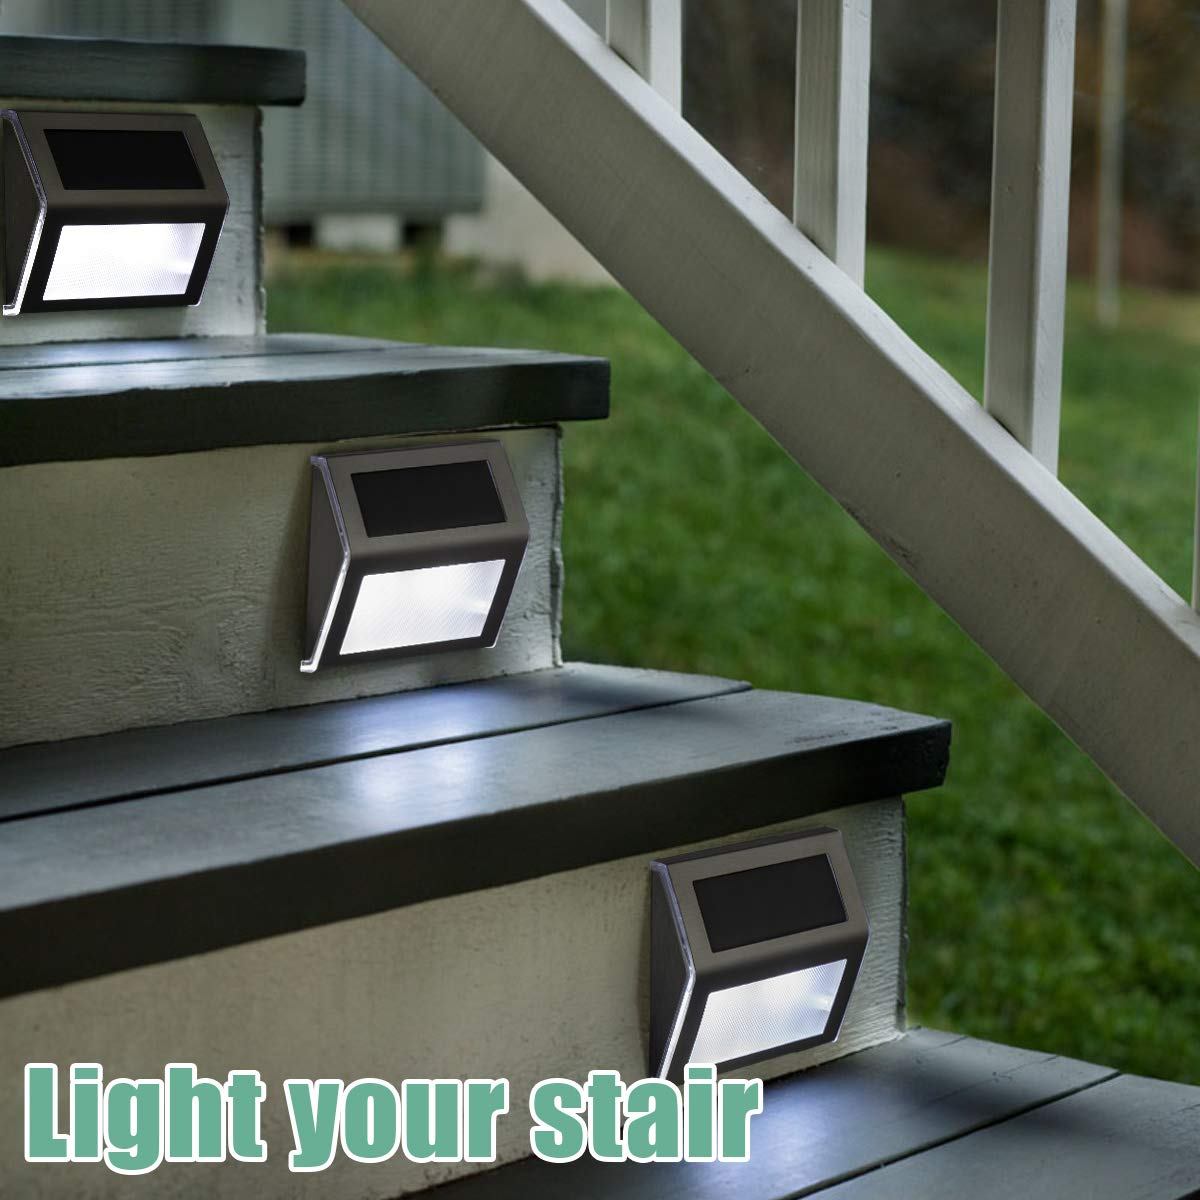 Pathway Yard Stairs Fences. White GIGALUMI 6 Pack Solar Step Deck Lights Stainless Steel Waterproof Led Solar Lamp for Outdoor